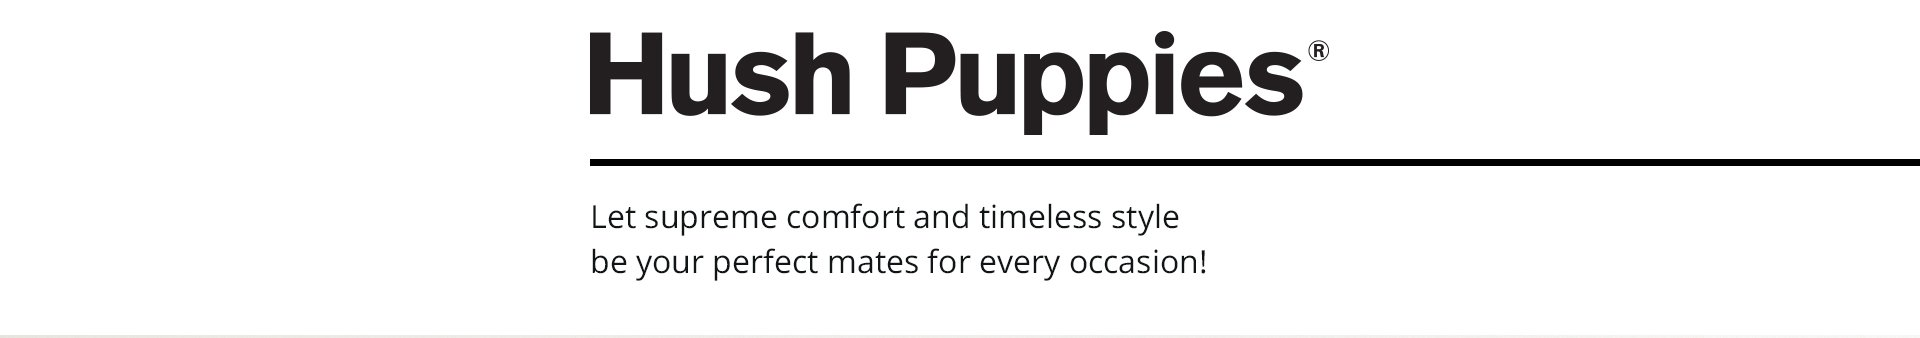 Hush Puppies header